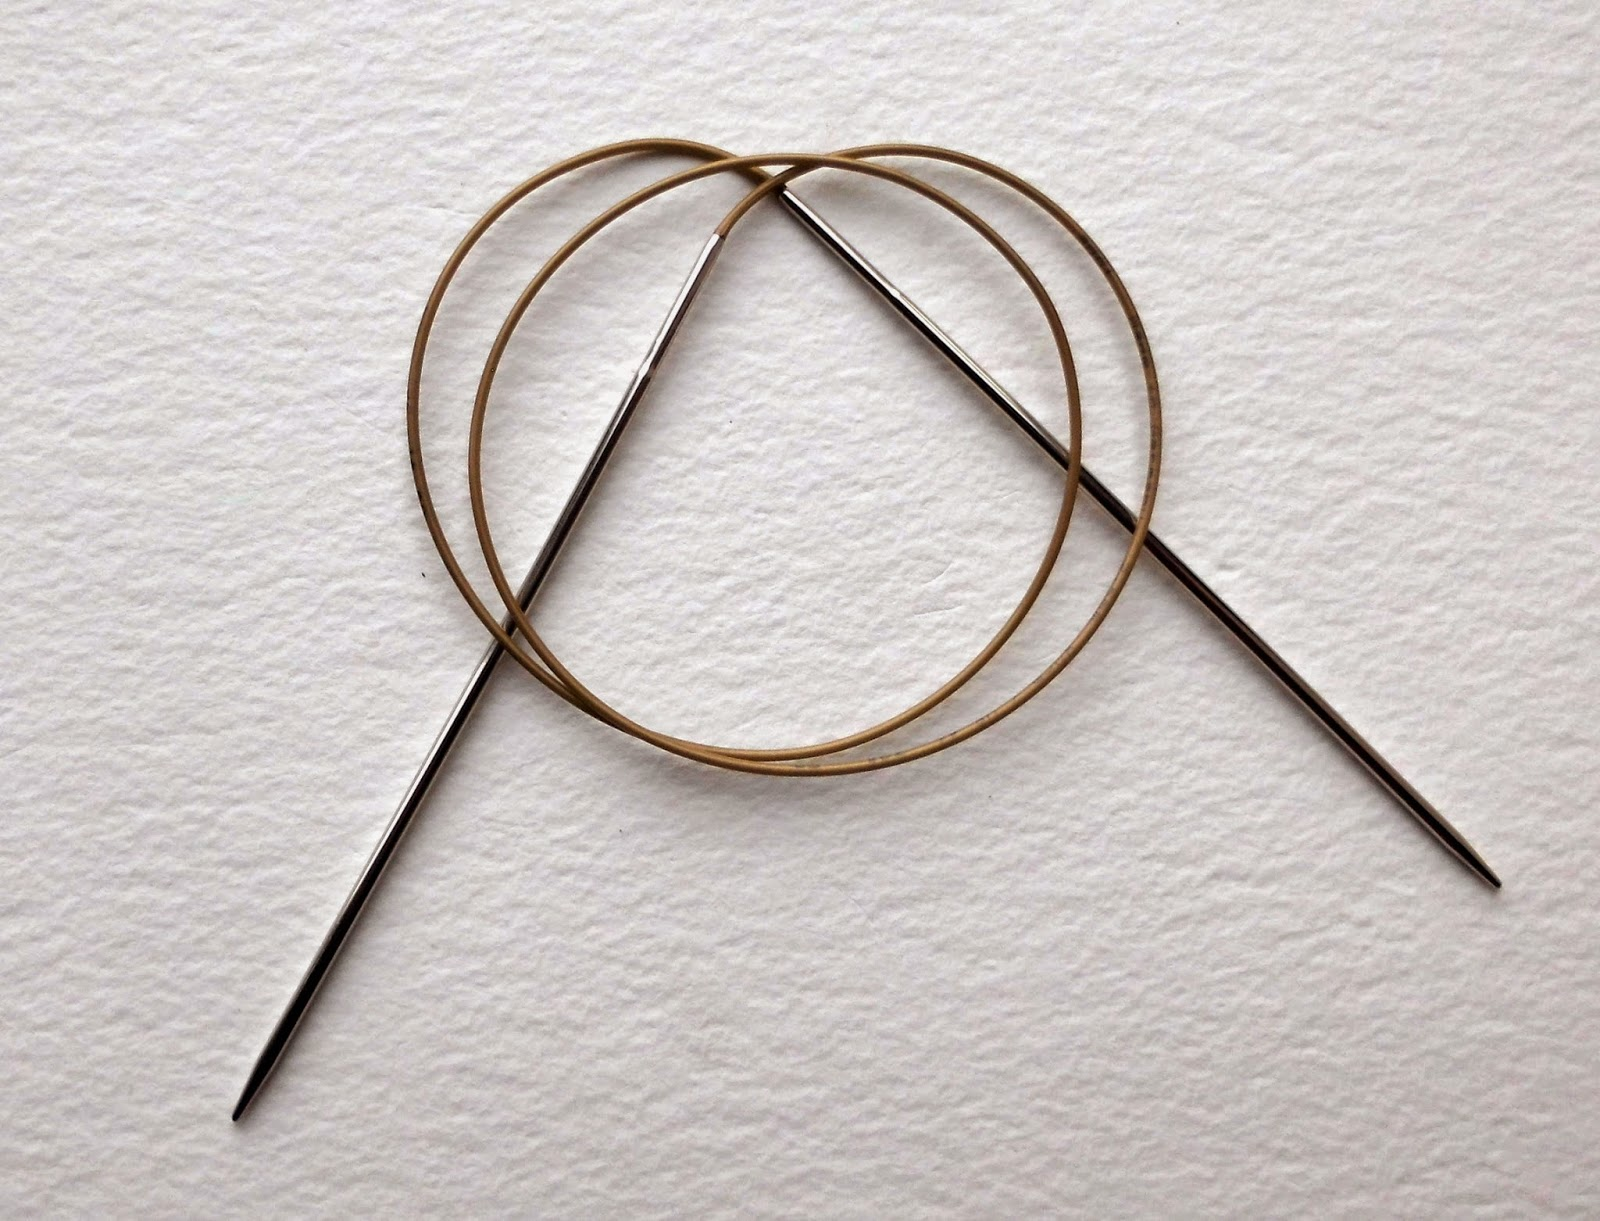 Long circular needle for magic loop